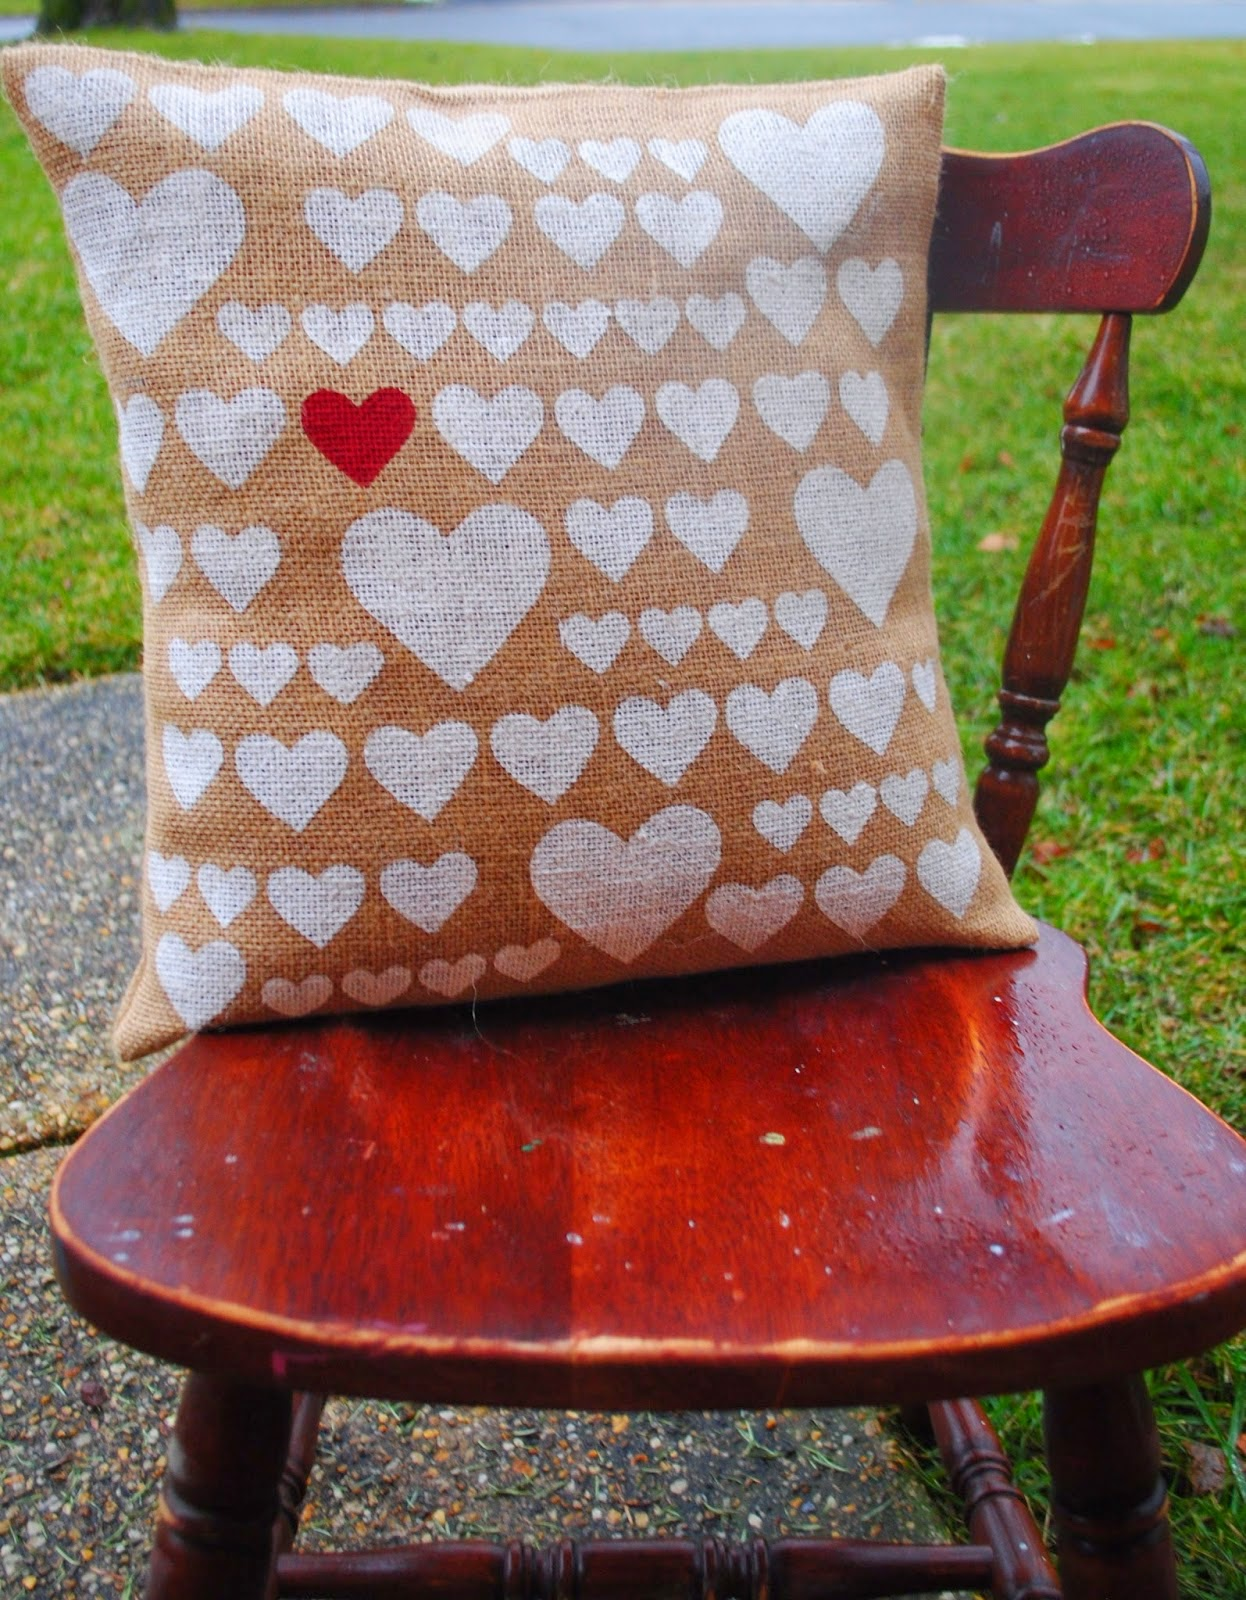 Silhouette, Silhouette project, valentine's day, project idea, pillow cover, hearts